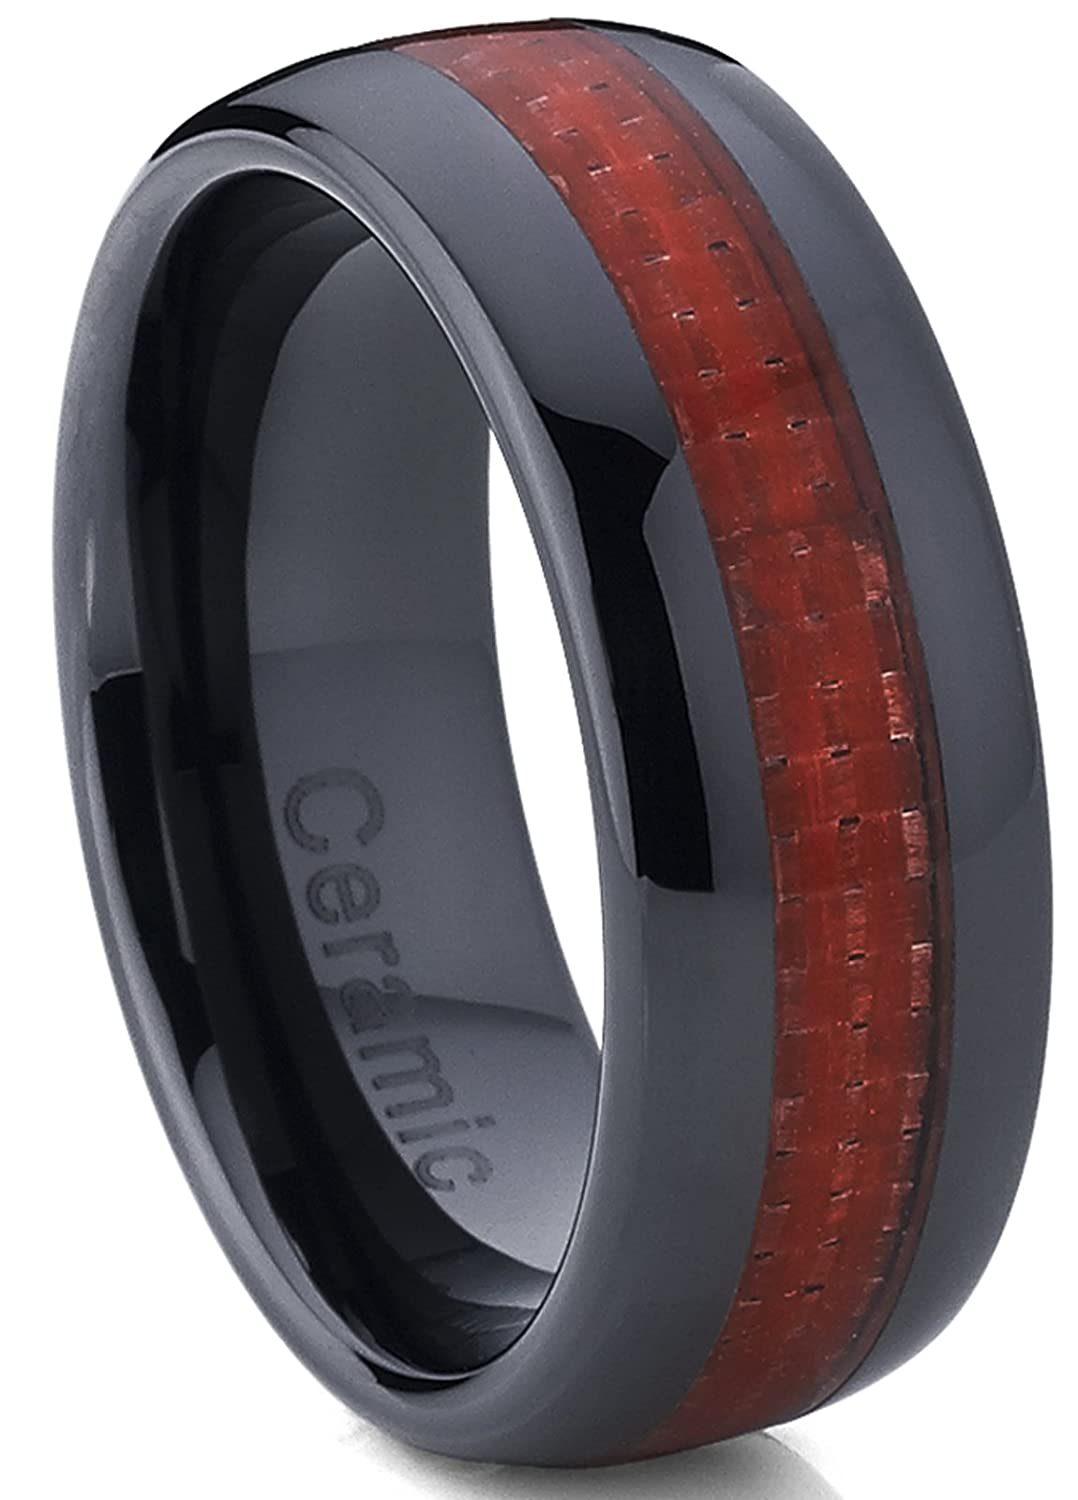 products and ring wedding edges finish polished wholesale diagonal bands aluminum photo ceramic with beveled silver band w brushed anodized tungsten cool red inner rings